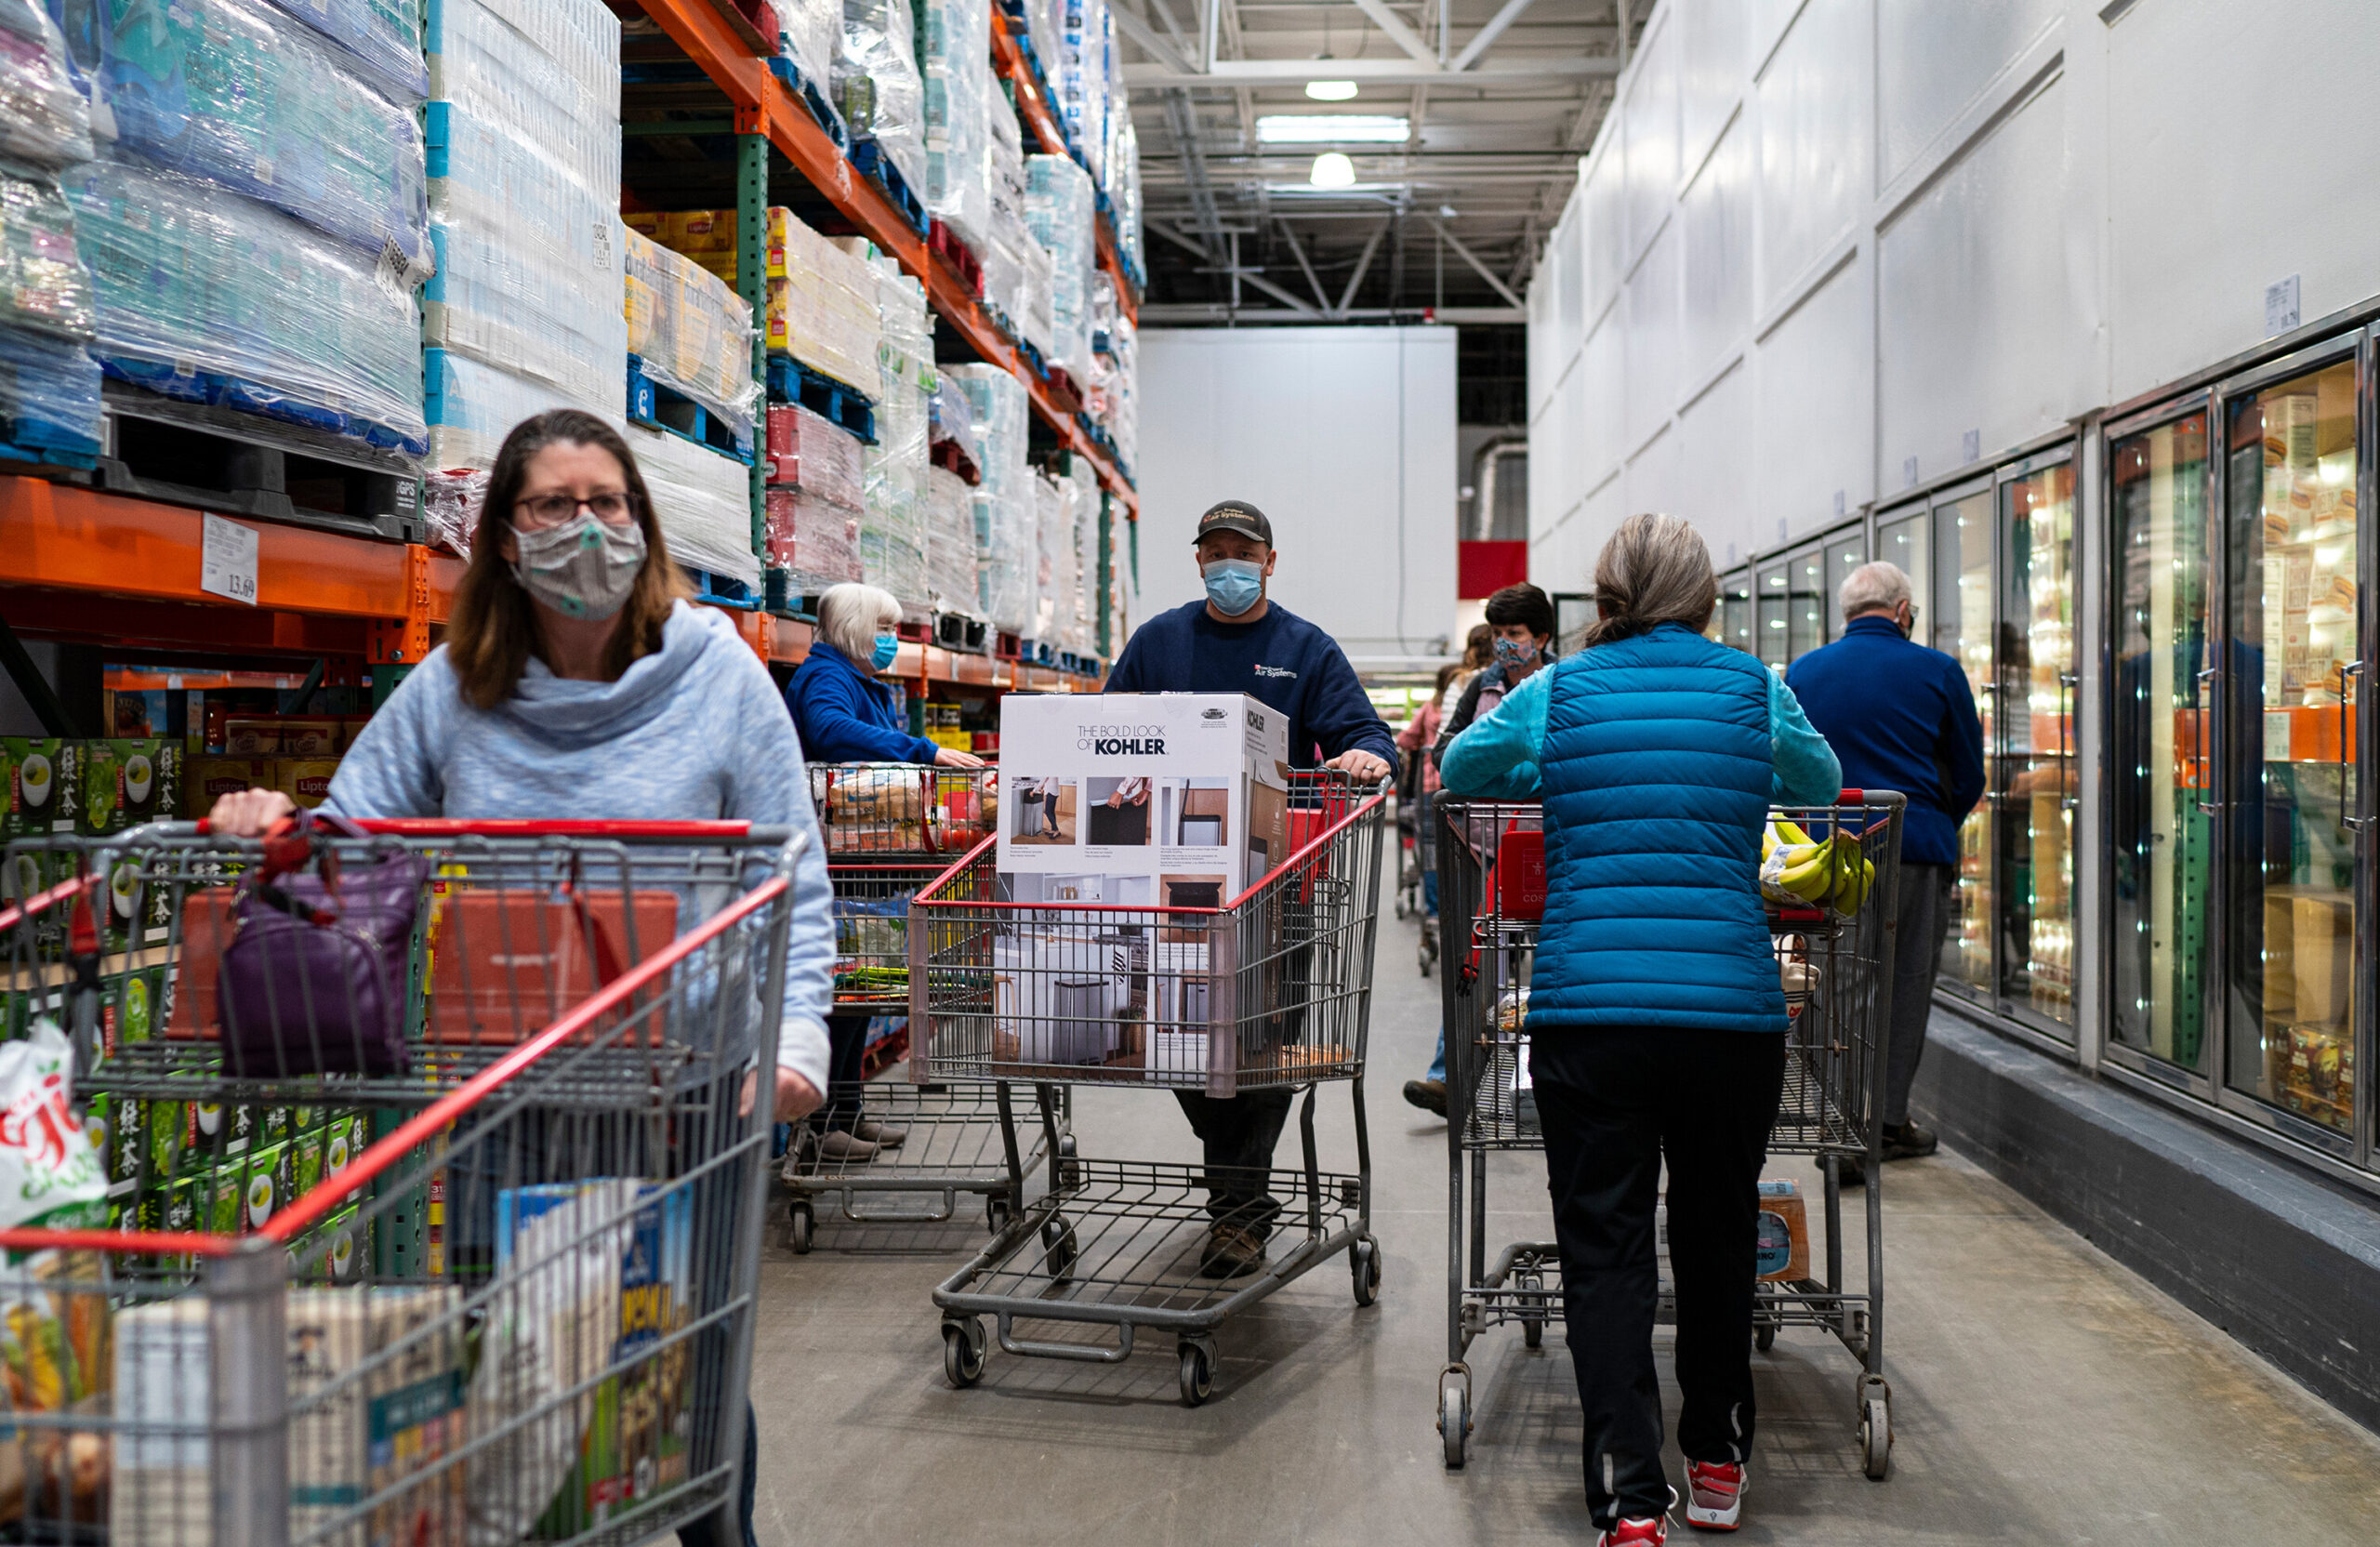 <i>Robert Nickelsberg/Getty Images</i><br/>Shoppers wearing masks search for items at a Costco Wholesale store on February 26 in Colchester